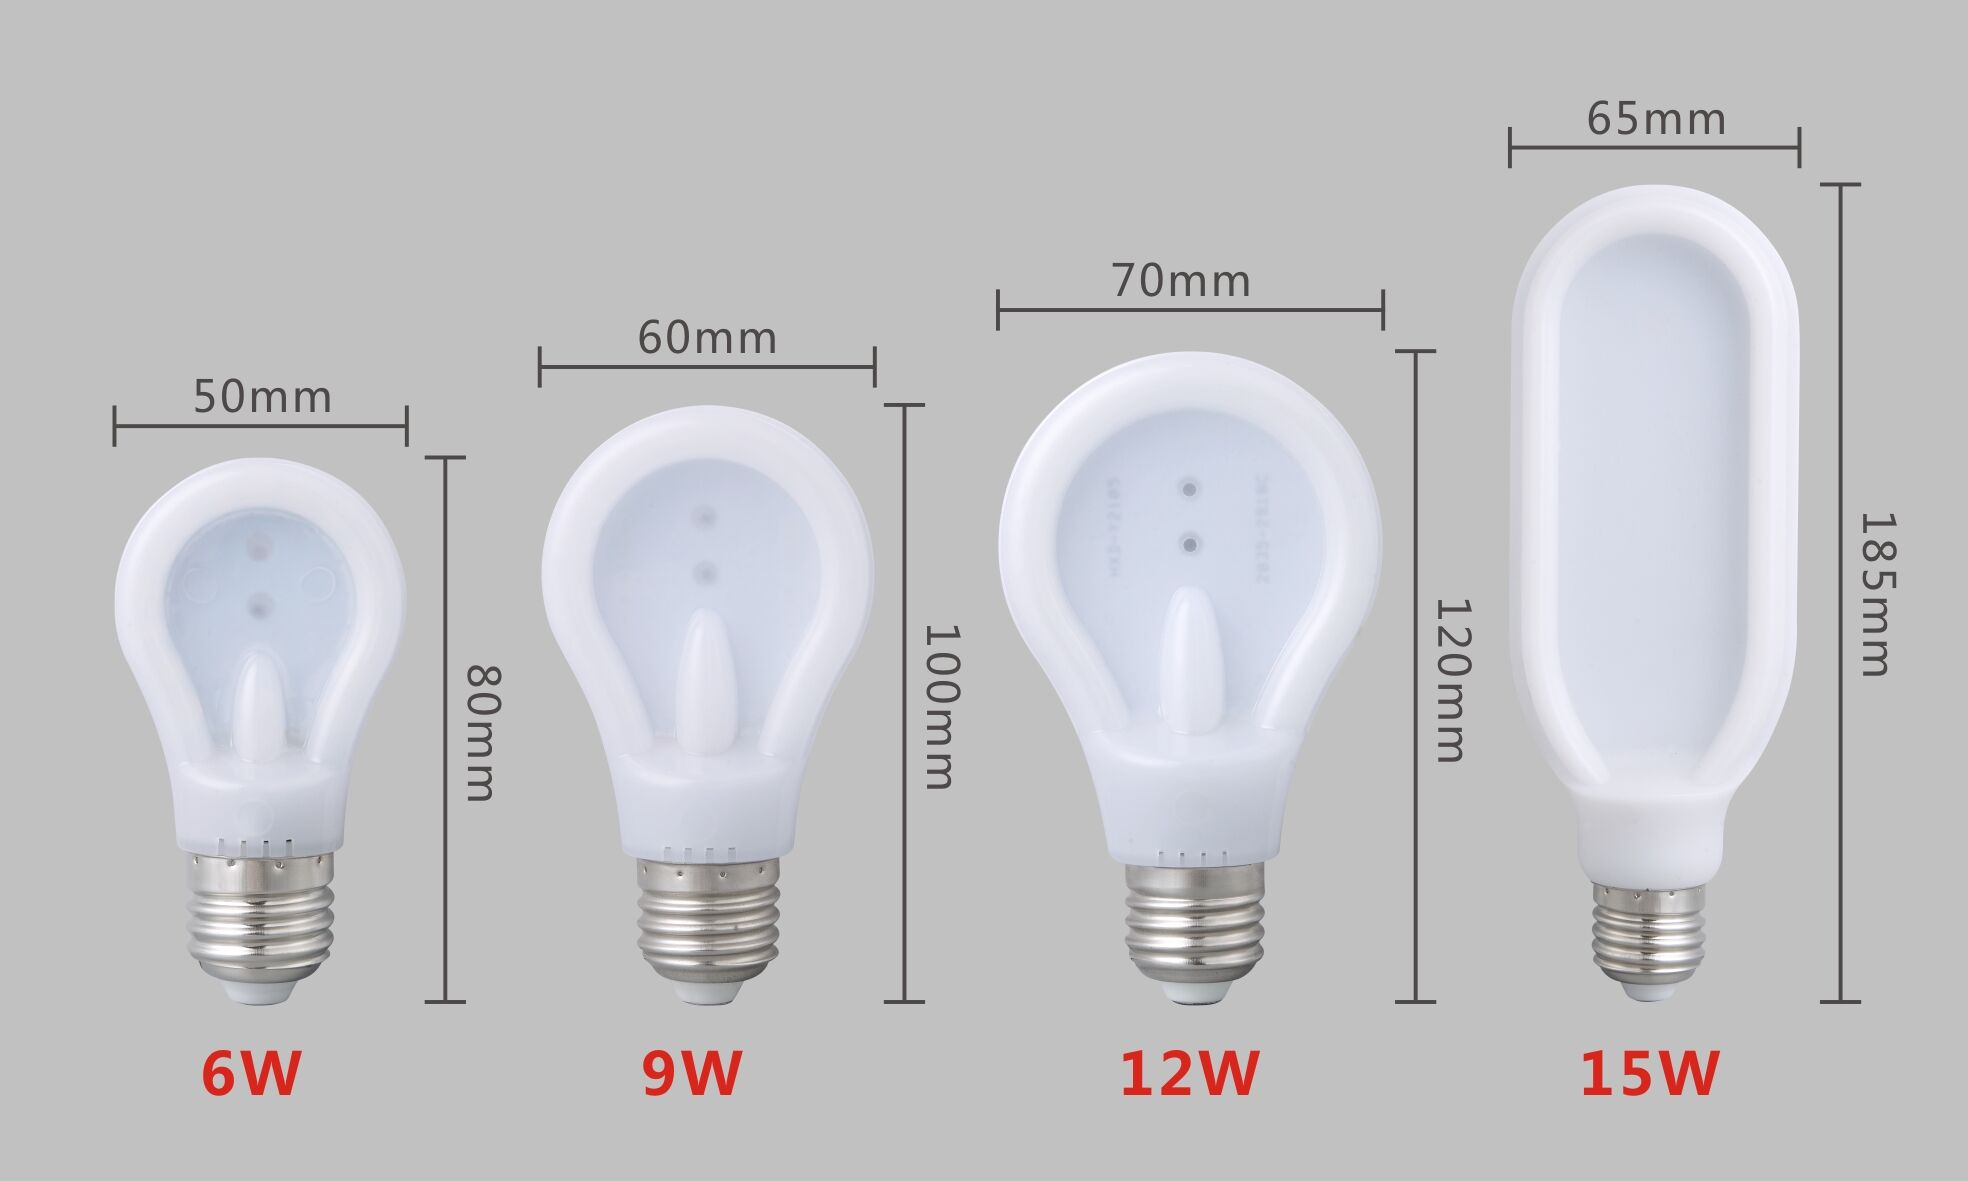 100-265V LED slim light 6w 9w 12w 18w, 360°lighting around, passed CE and RoHs certification